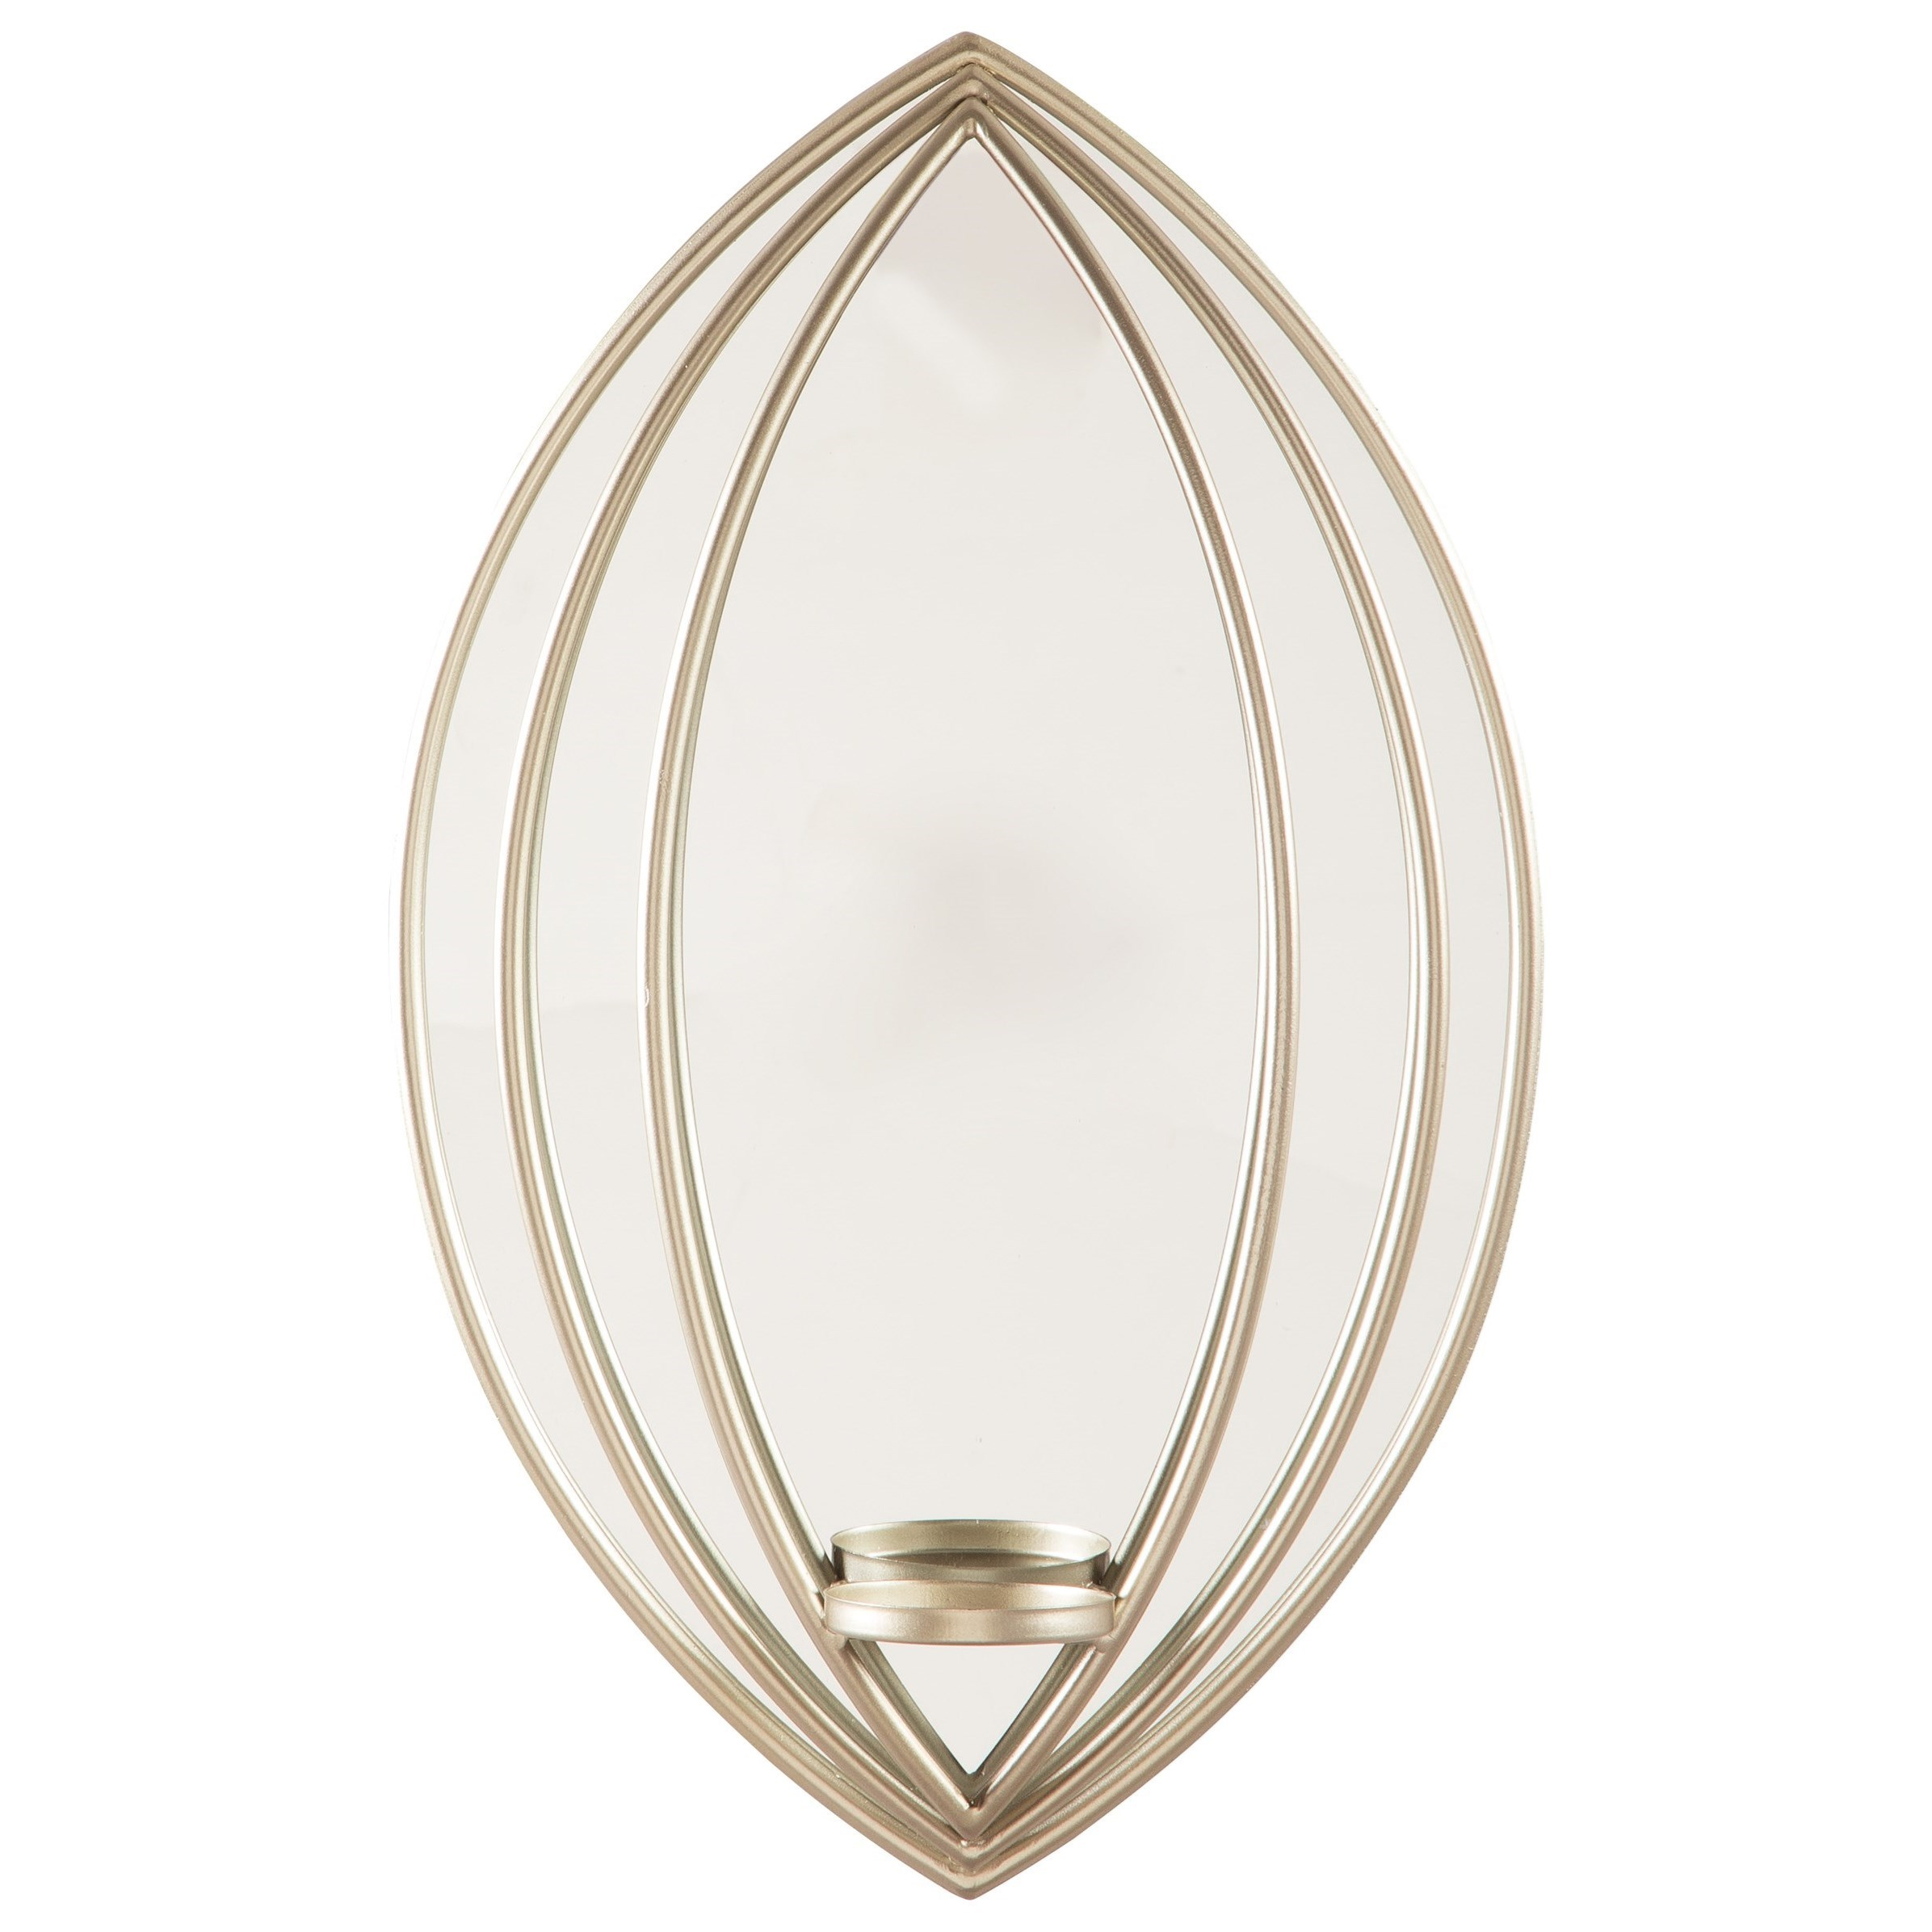 Accent Mirrors Donnica Silver Finish Wall Sconce by Signature Design by Ashley at Lynn's Furniture & Mattress